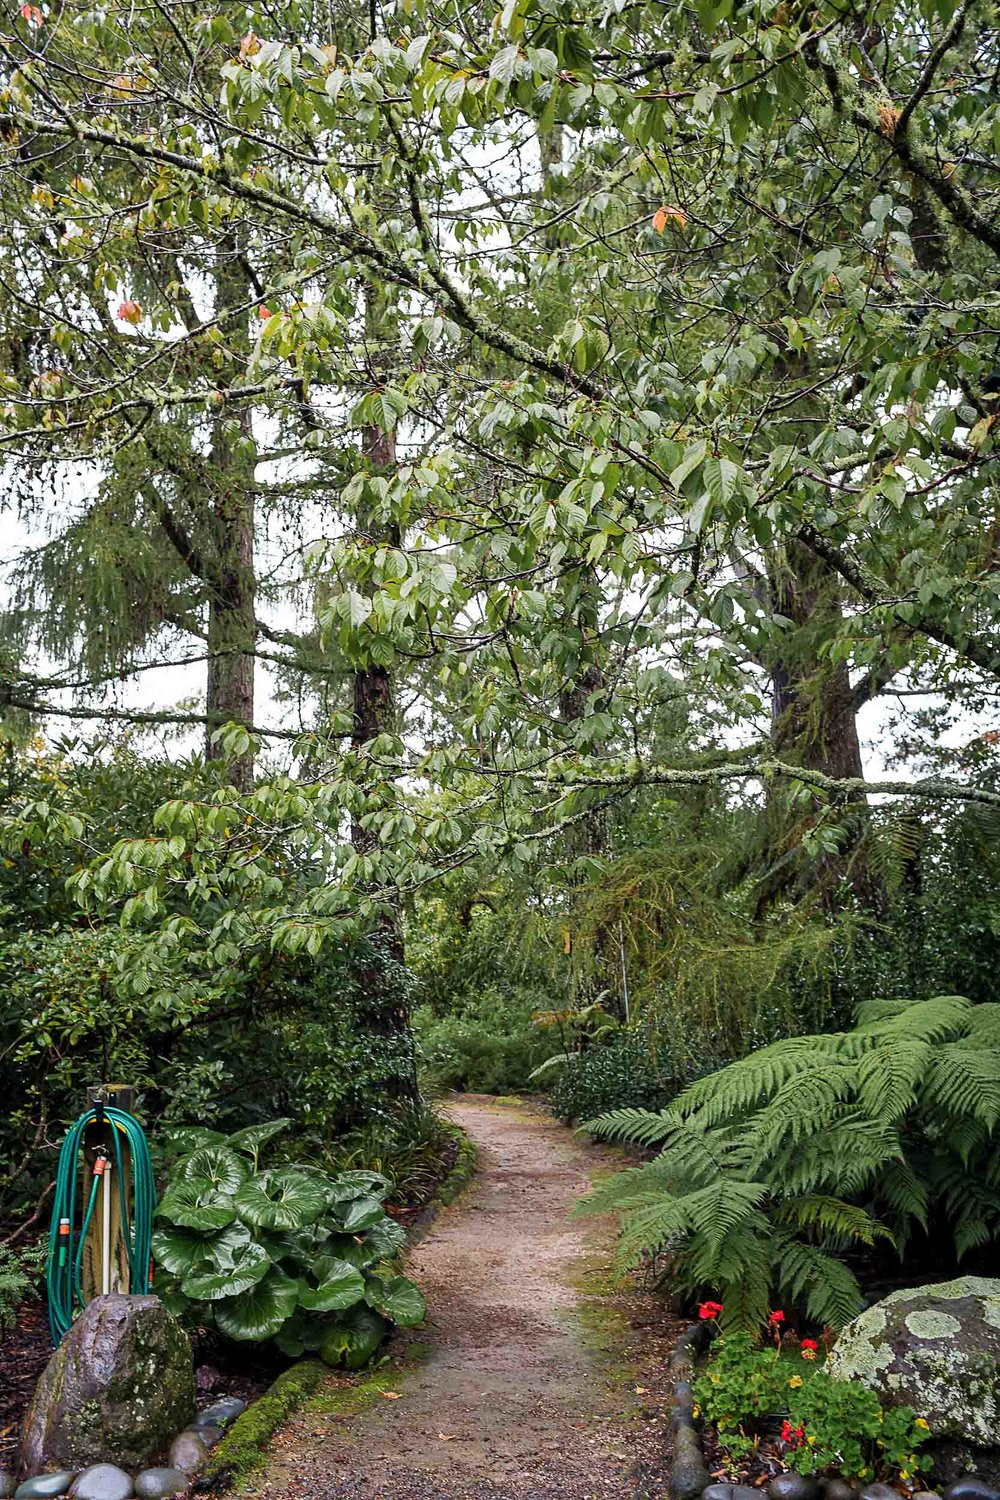 If you are planning to hike the Tongariro Alpine Crossing, consider staying in the woods at Creel Lodge in Turangi the night before